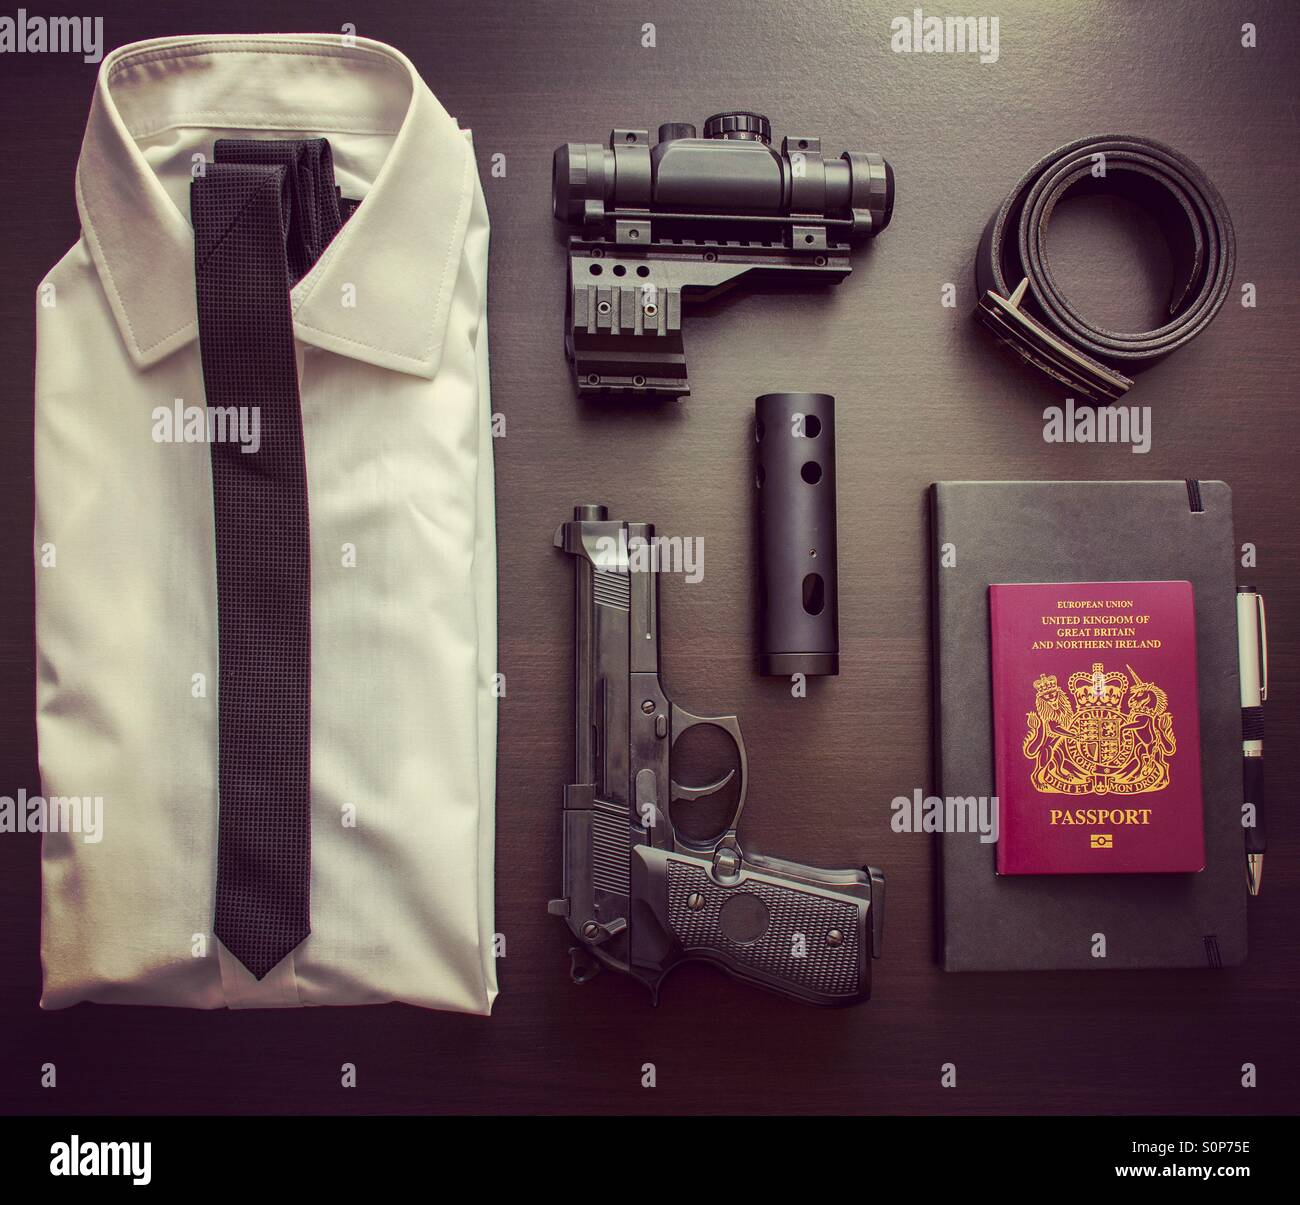 Secret Agent / spy travel kit Imagen De Stock